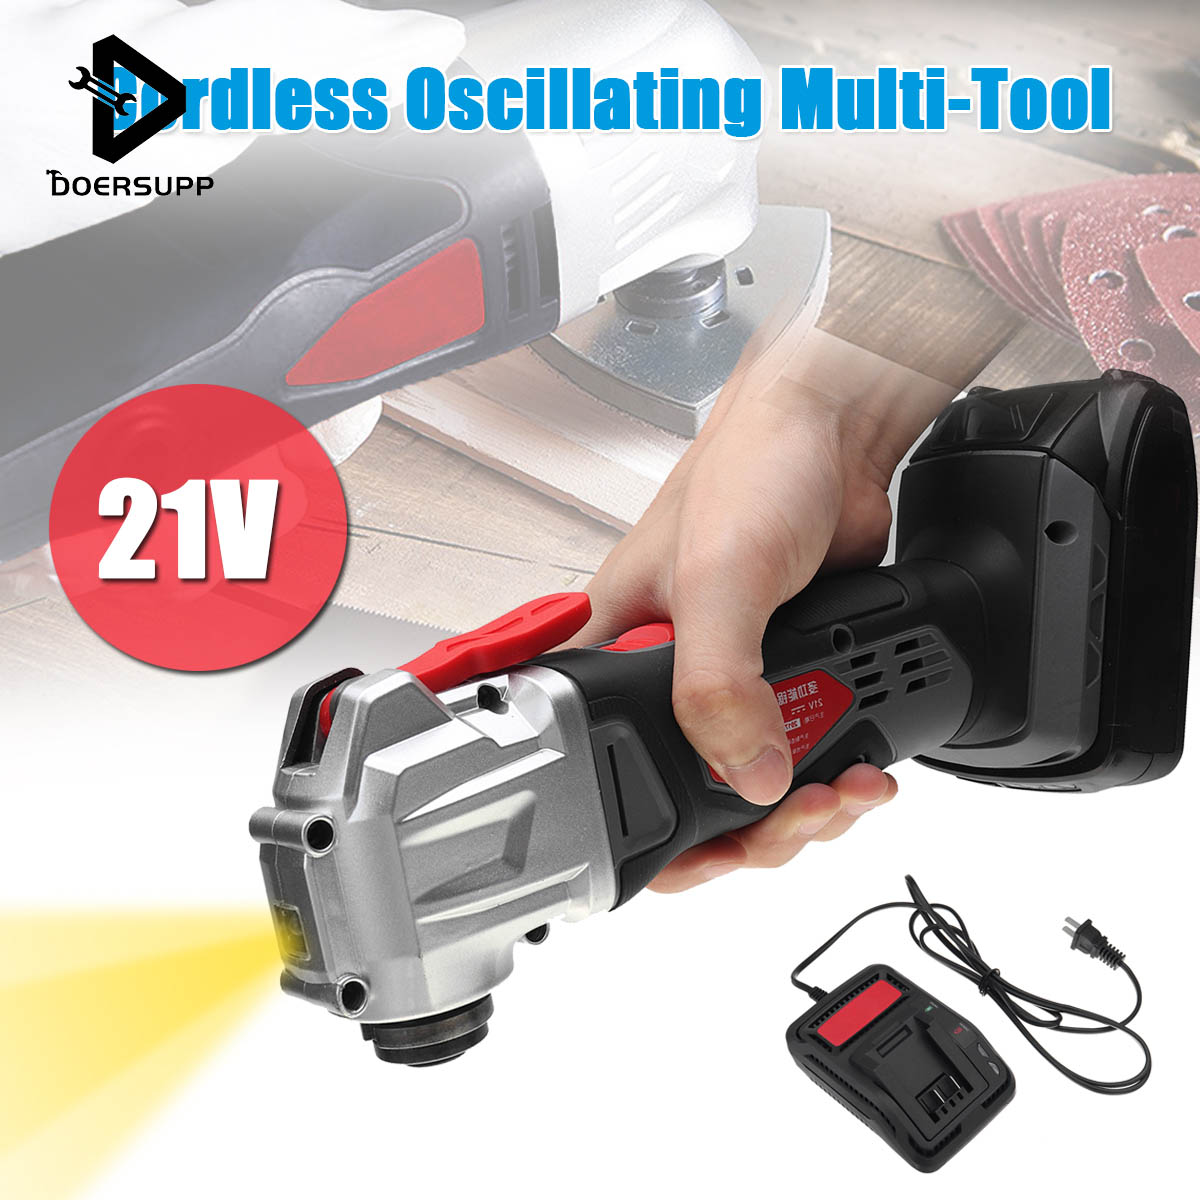 220V Multifunction Cordless Oscillating Tool Kit Rechargeble Electric Trimmer Sander Mul ...